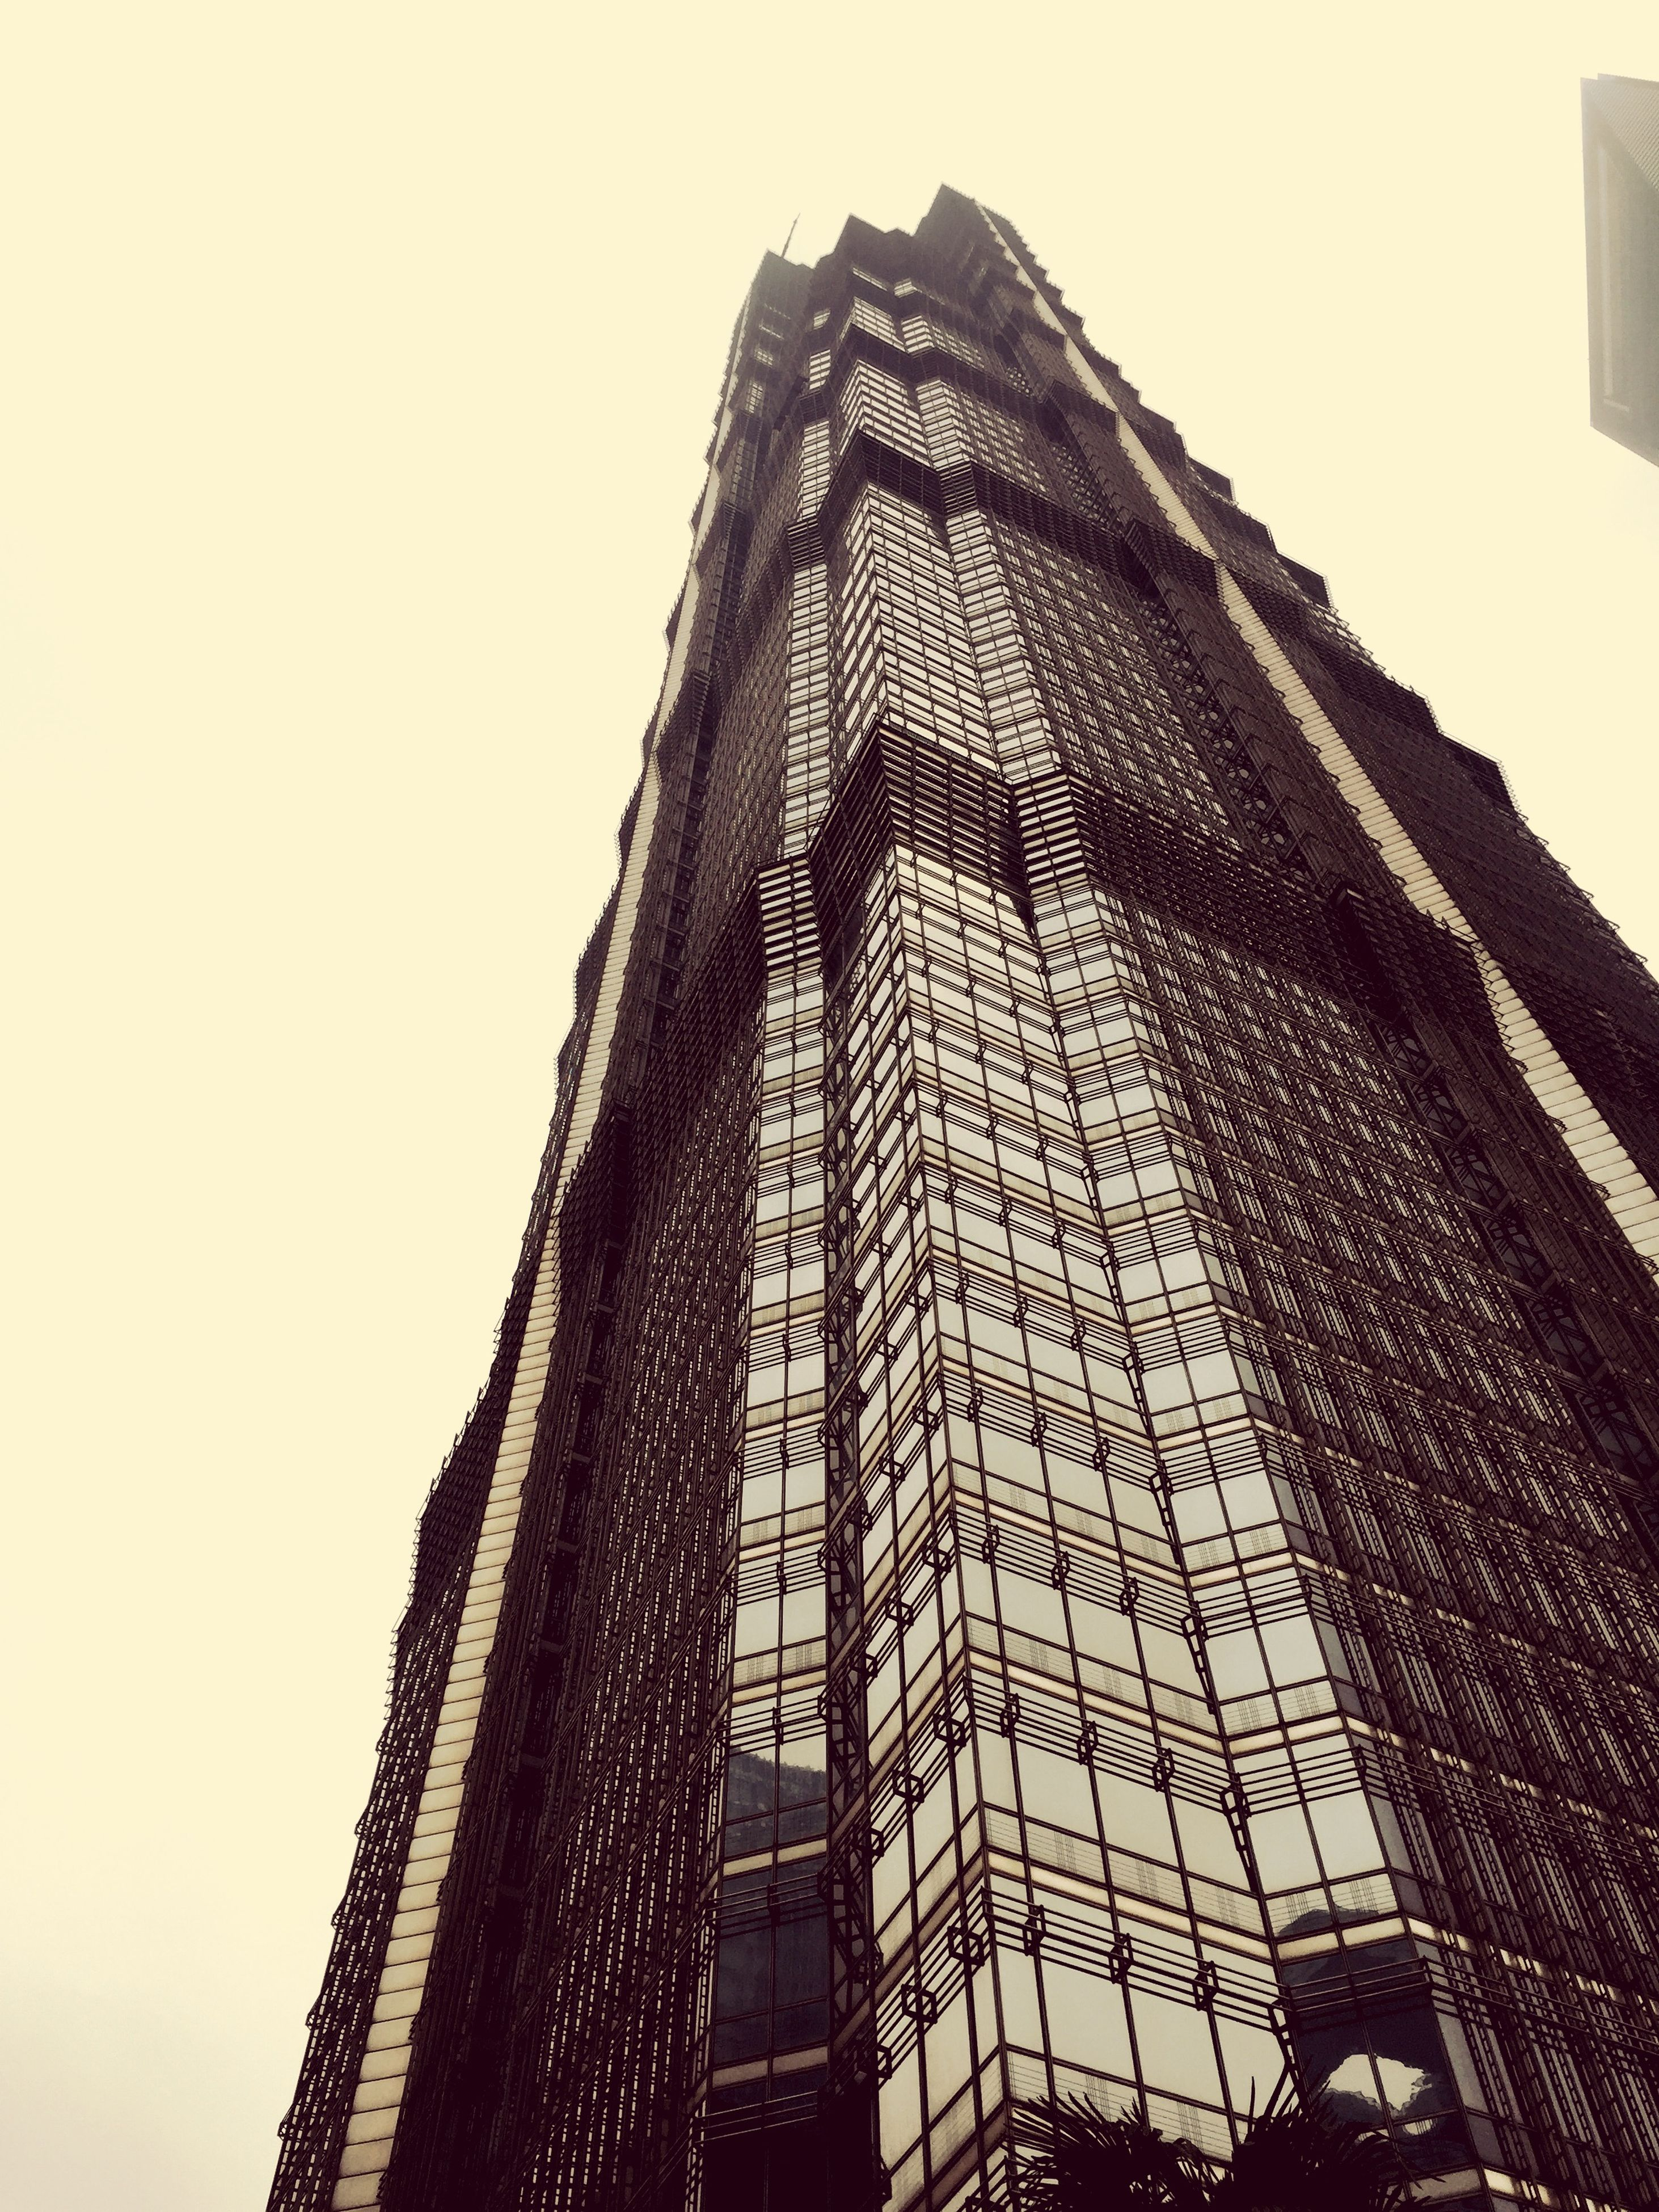 building exterior, architecture, built structure, low angle view, clear sky, city, tower, skyscraper, tall - high, modern, building, office building, sky, outdoors, day, no people, copy space, window, tall, pattern